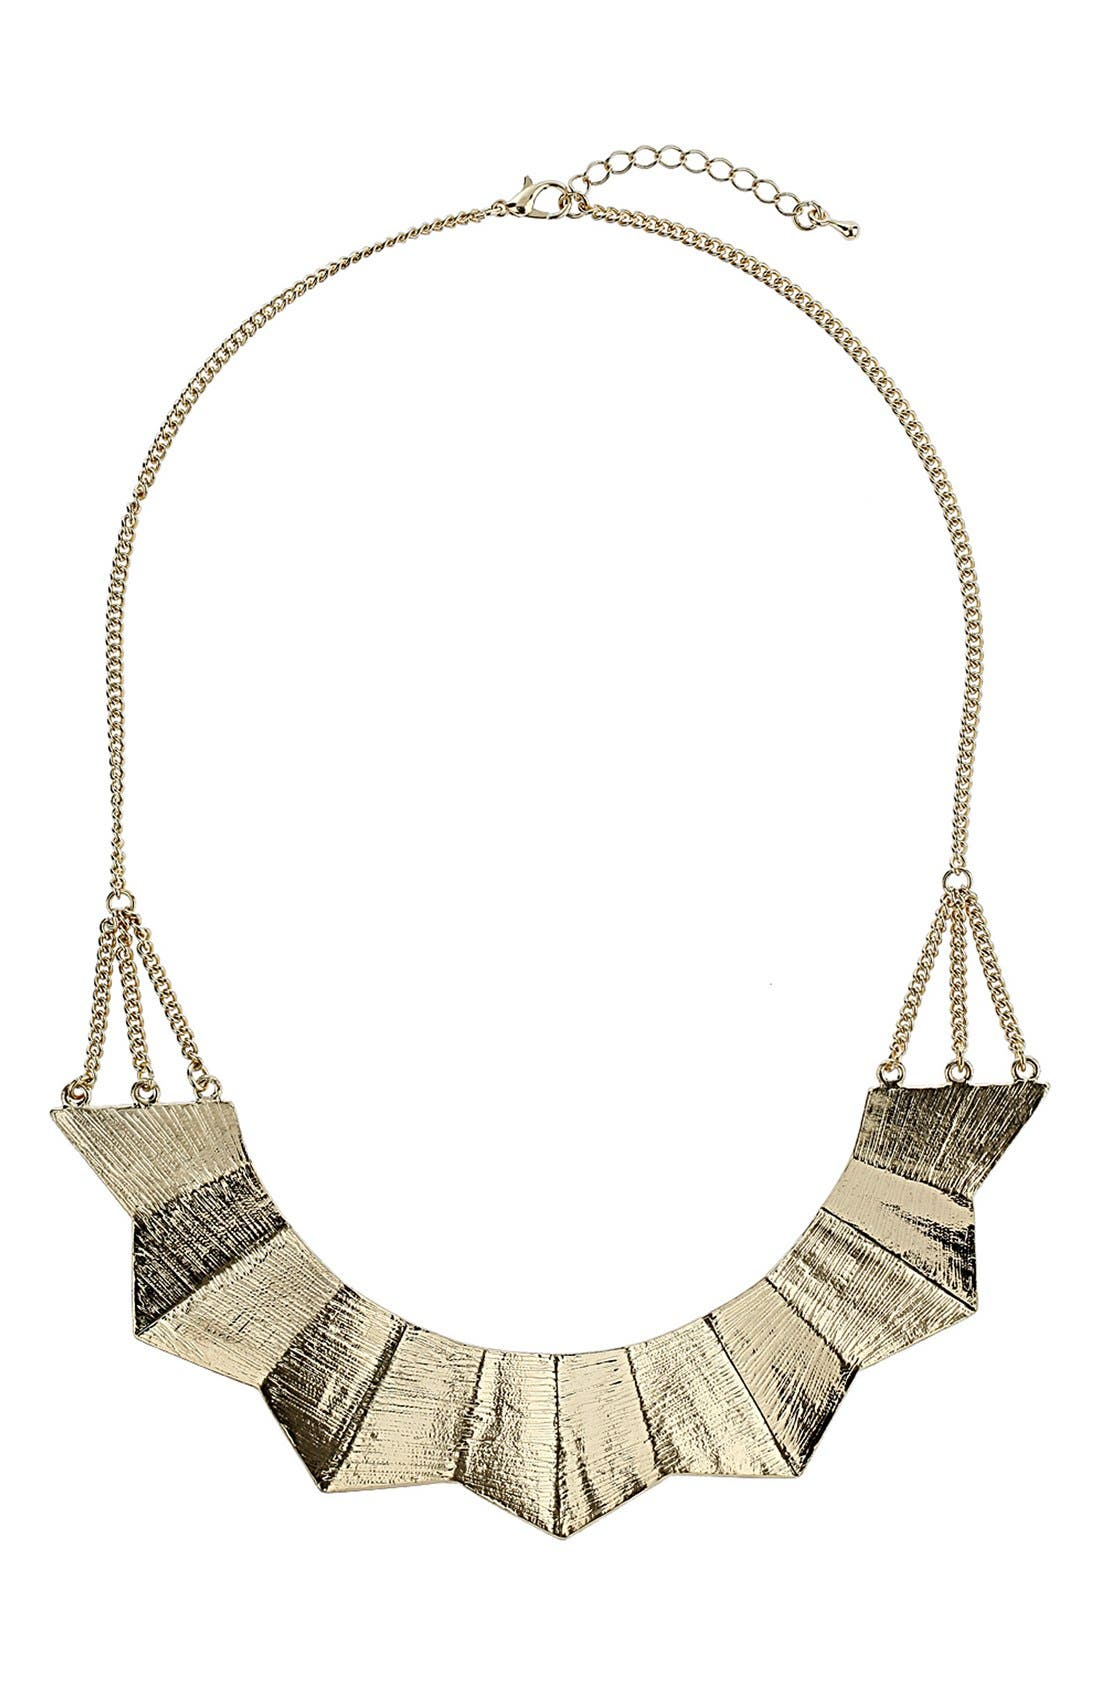 Alternate Image 1 Selected - Topshop Curved Bar Necklace